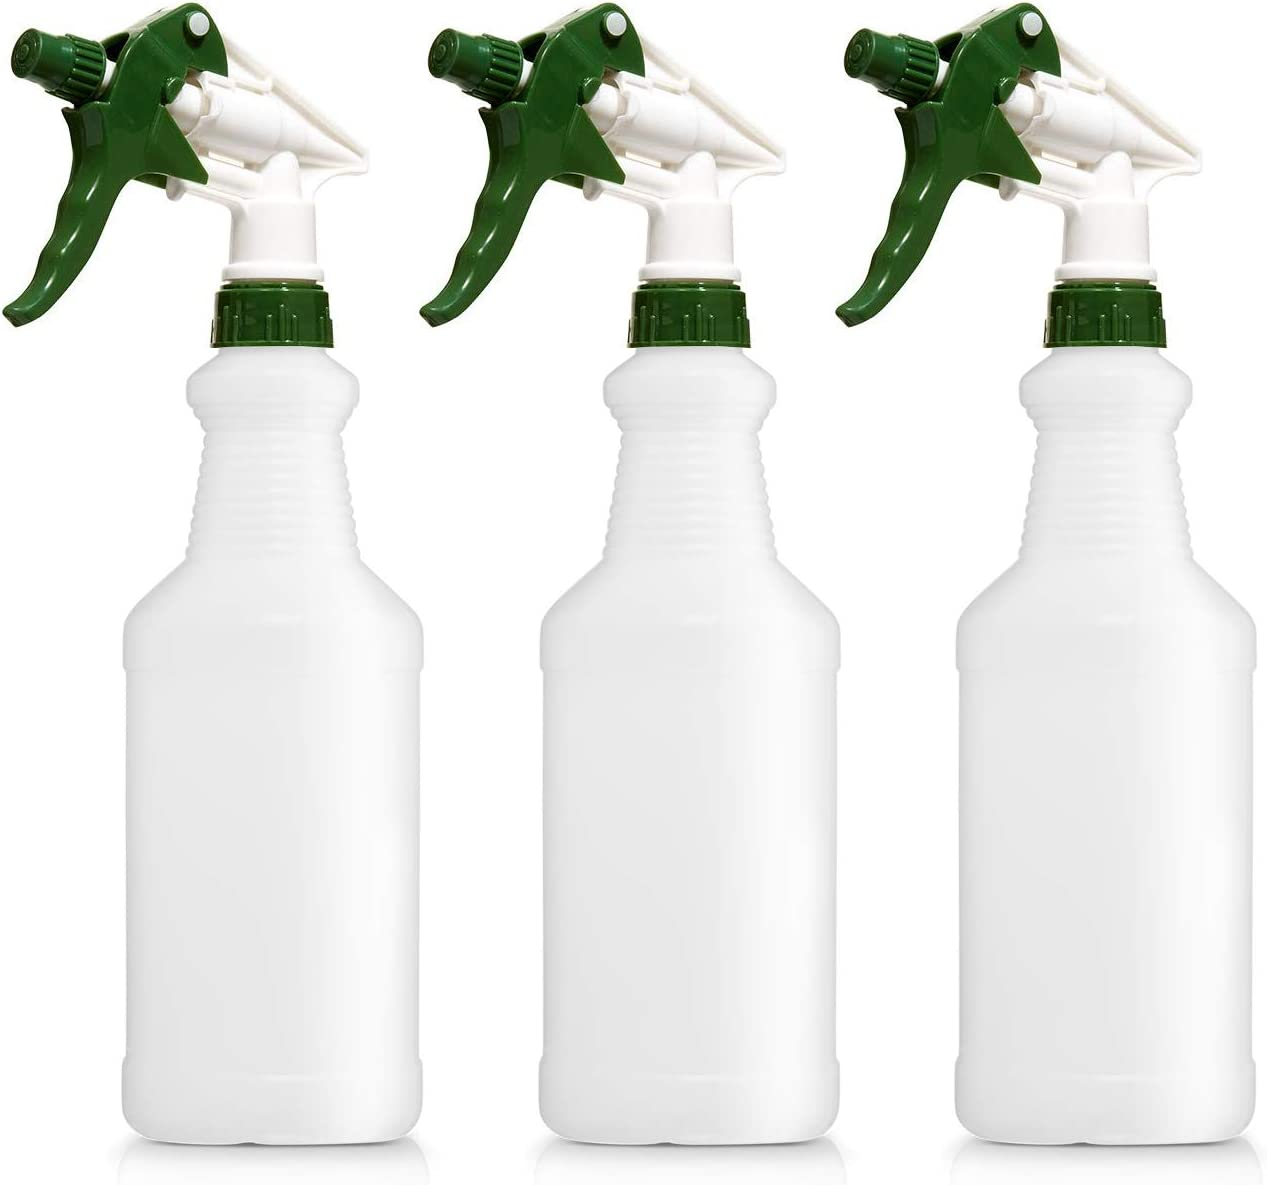 Empty Plastic Spray Bottles, 16 Ounce, Pack of 3, Professional Chemical Resistant, Heavy Duty, Fully Adjustable Head Sprayer: Automotive